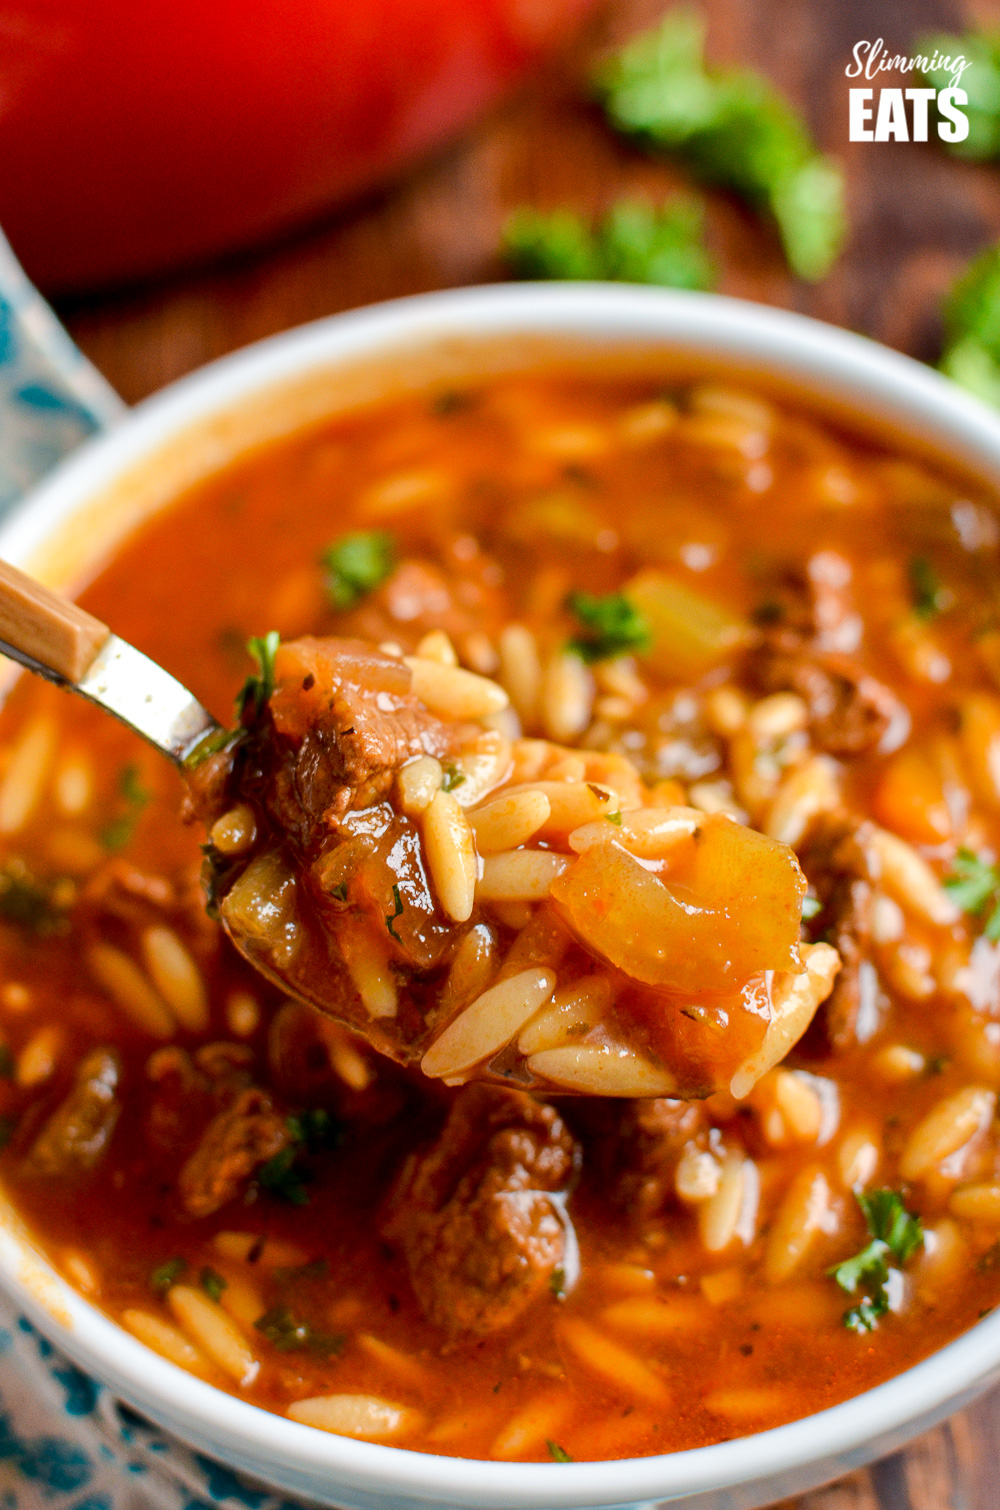 spoonful of beef celery orzo stew from white bowl